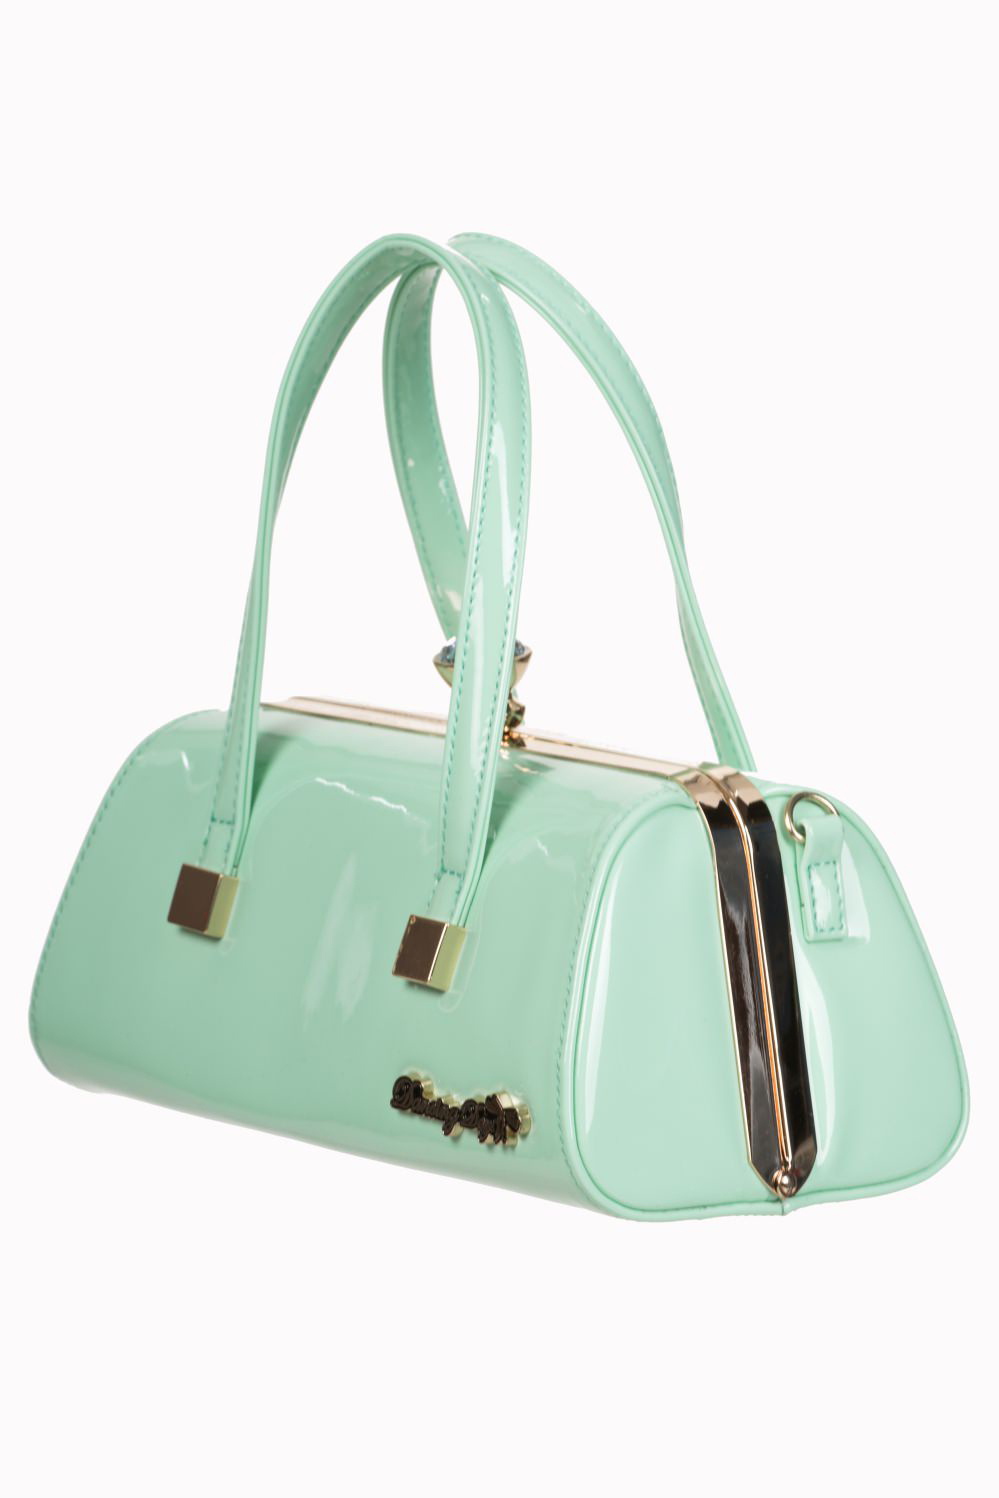 Emily Vintage Inspired 50's Handbag by Banned Apparel - in Mint Green